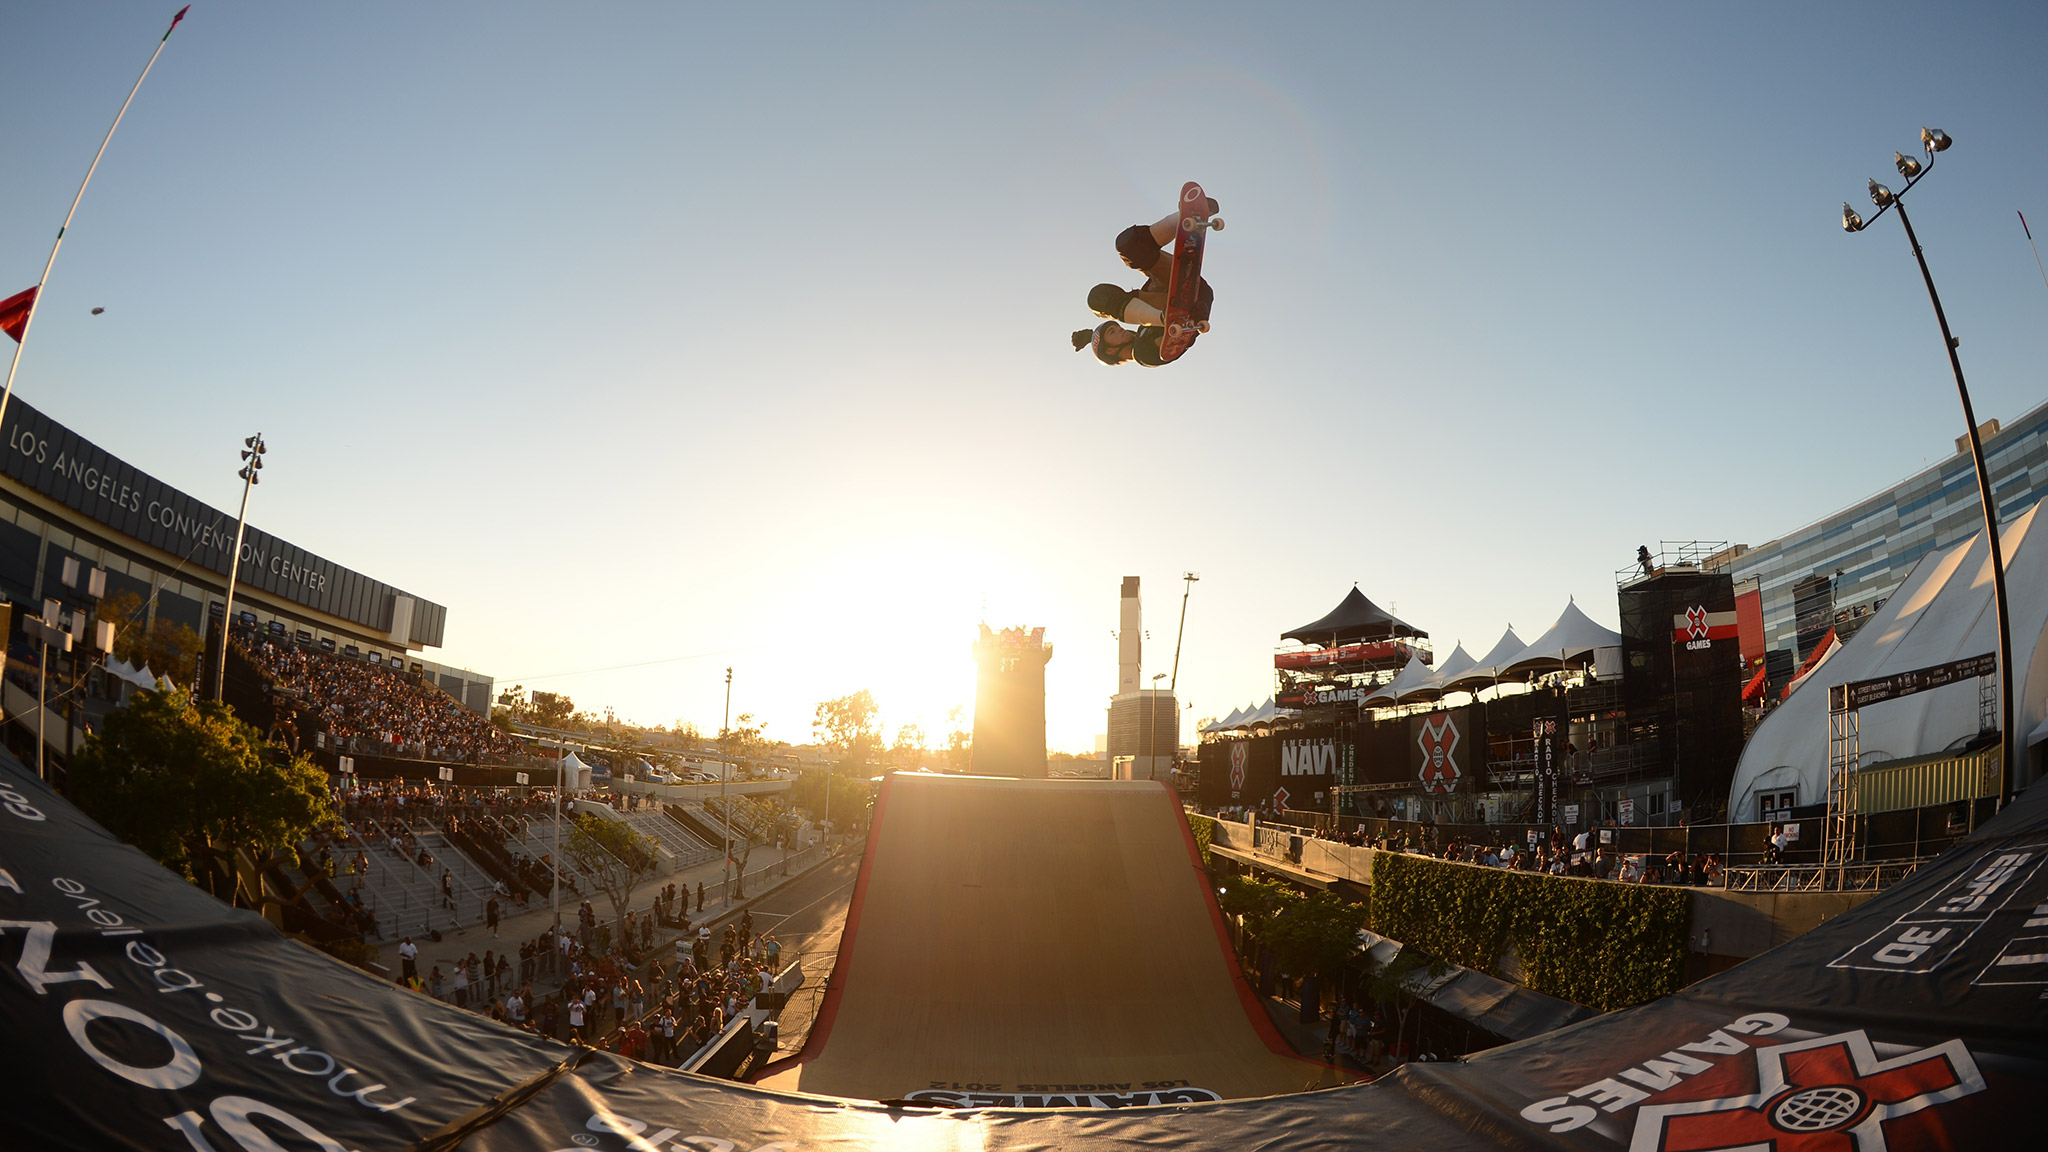 xgames skateboarding widescreen desktop wallpaper 738